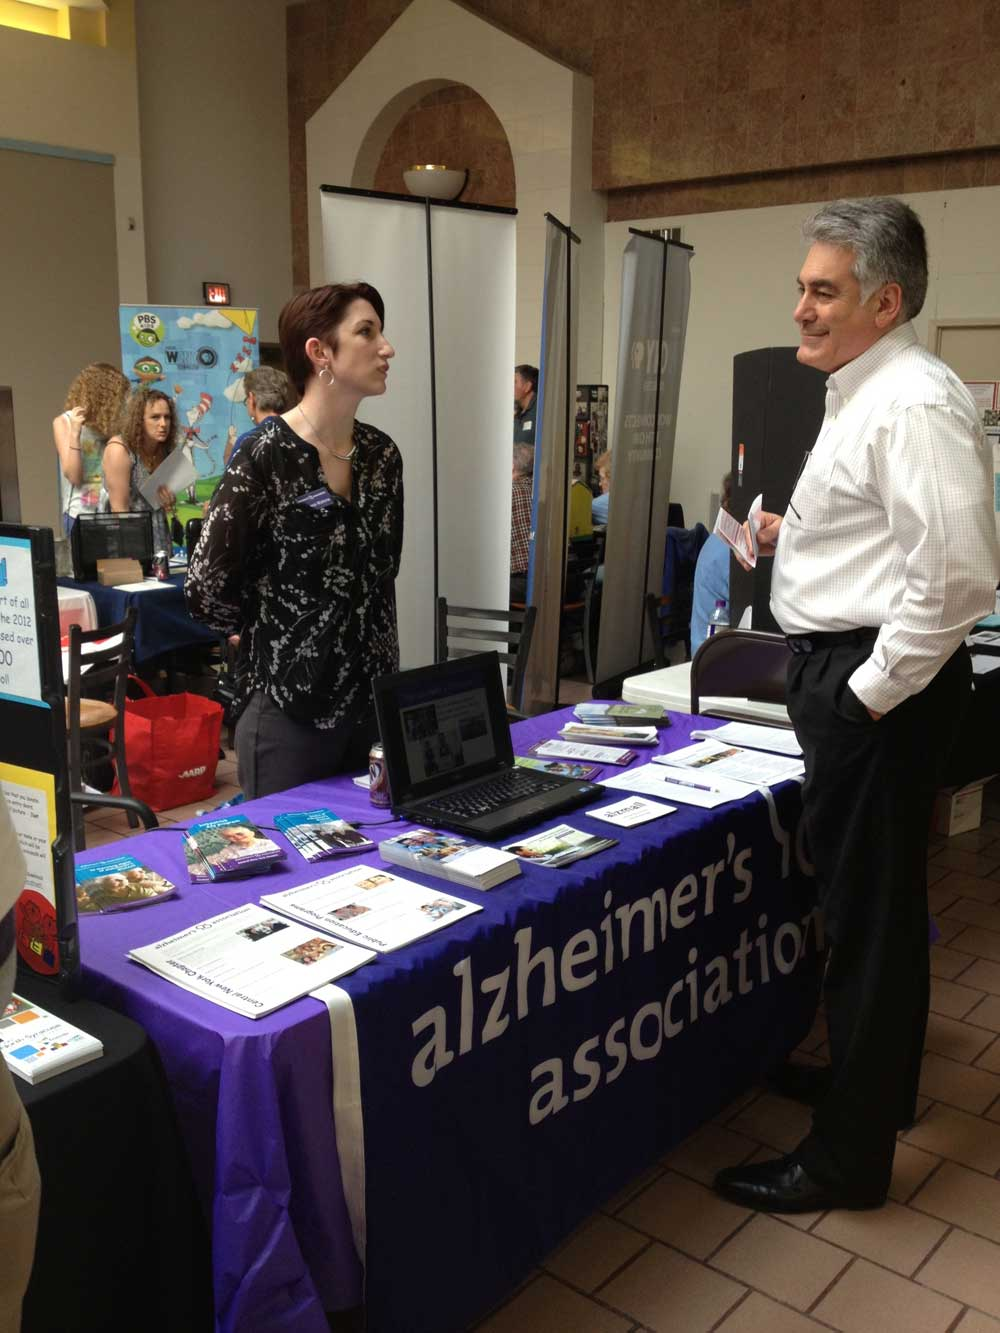 Assemblyman Stirpe stops by the Alzheimer's Association table at the Volunteer Fair he hosted.